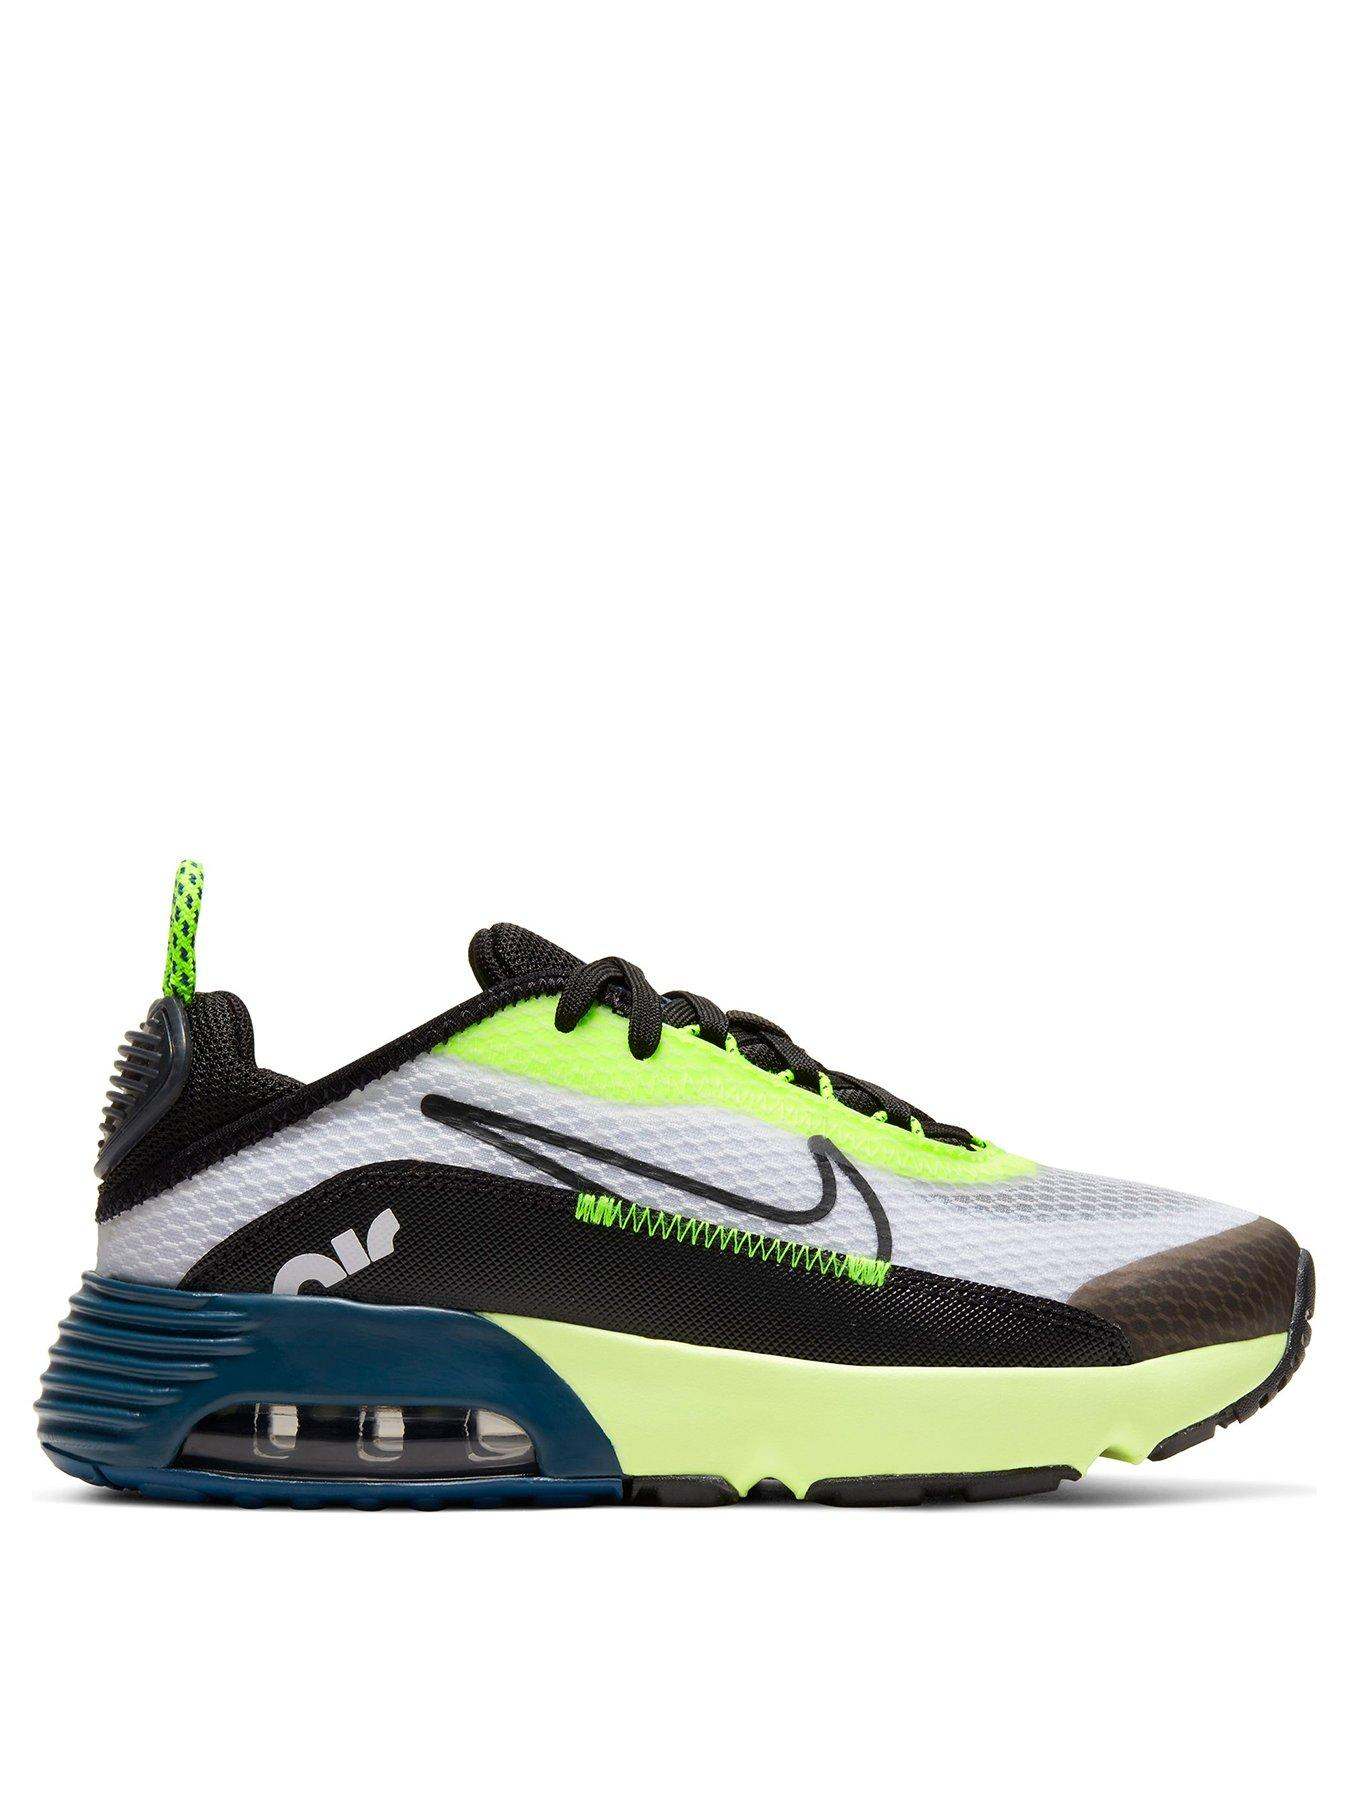 The latest Air Max 2090 color in full family sizing is now . Pinterest